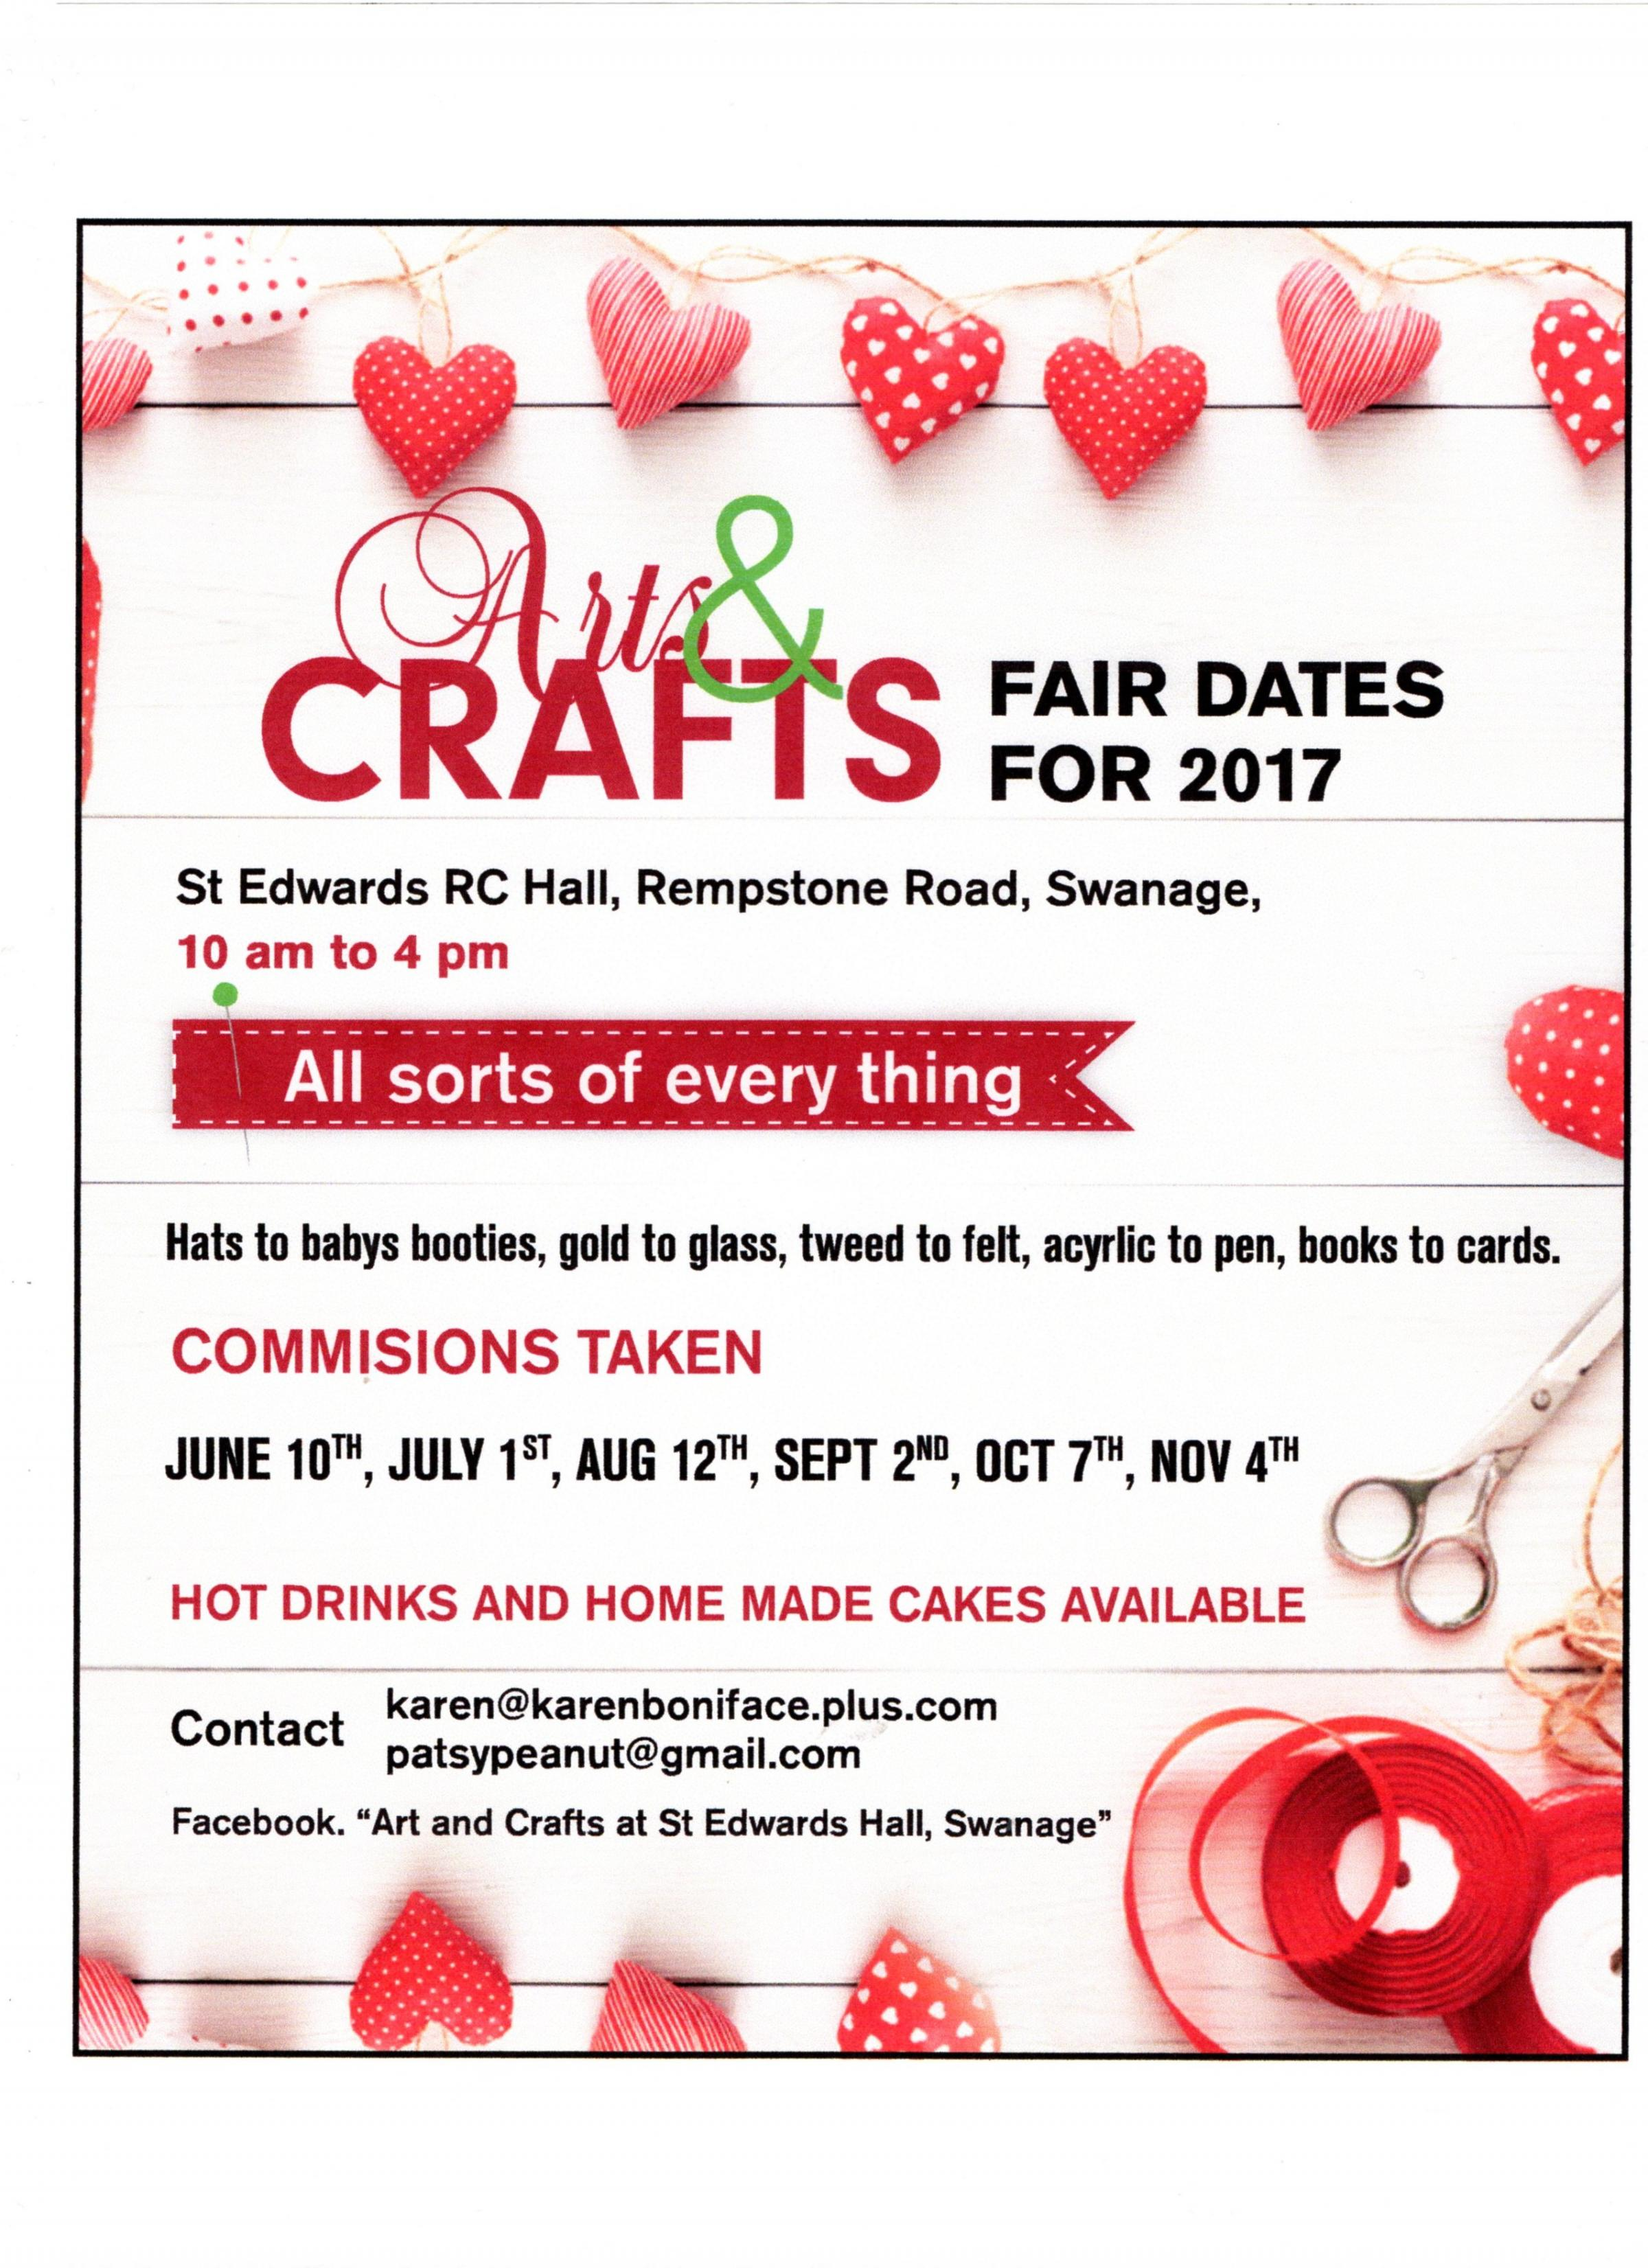 Art and Crafts Fair at St Edwards Hall, Swanage